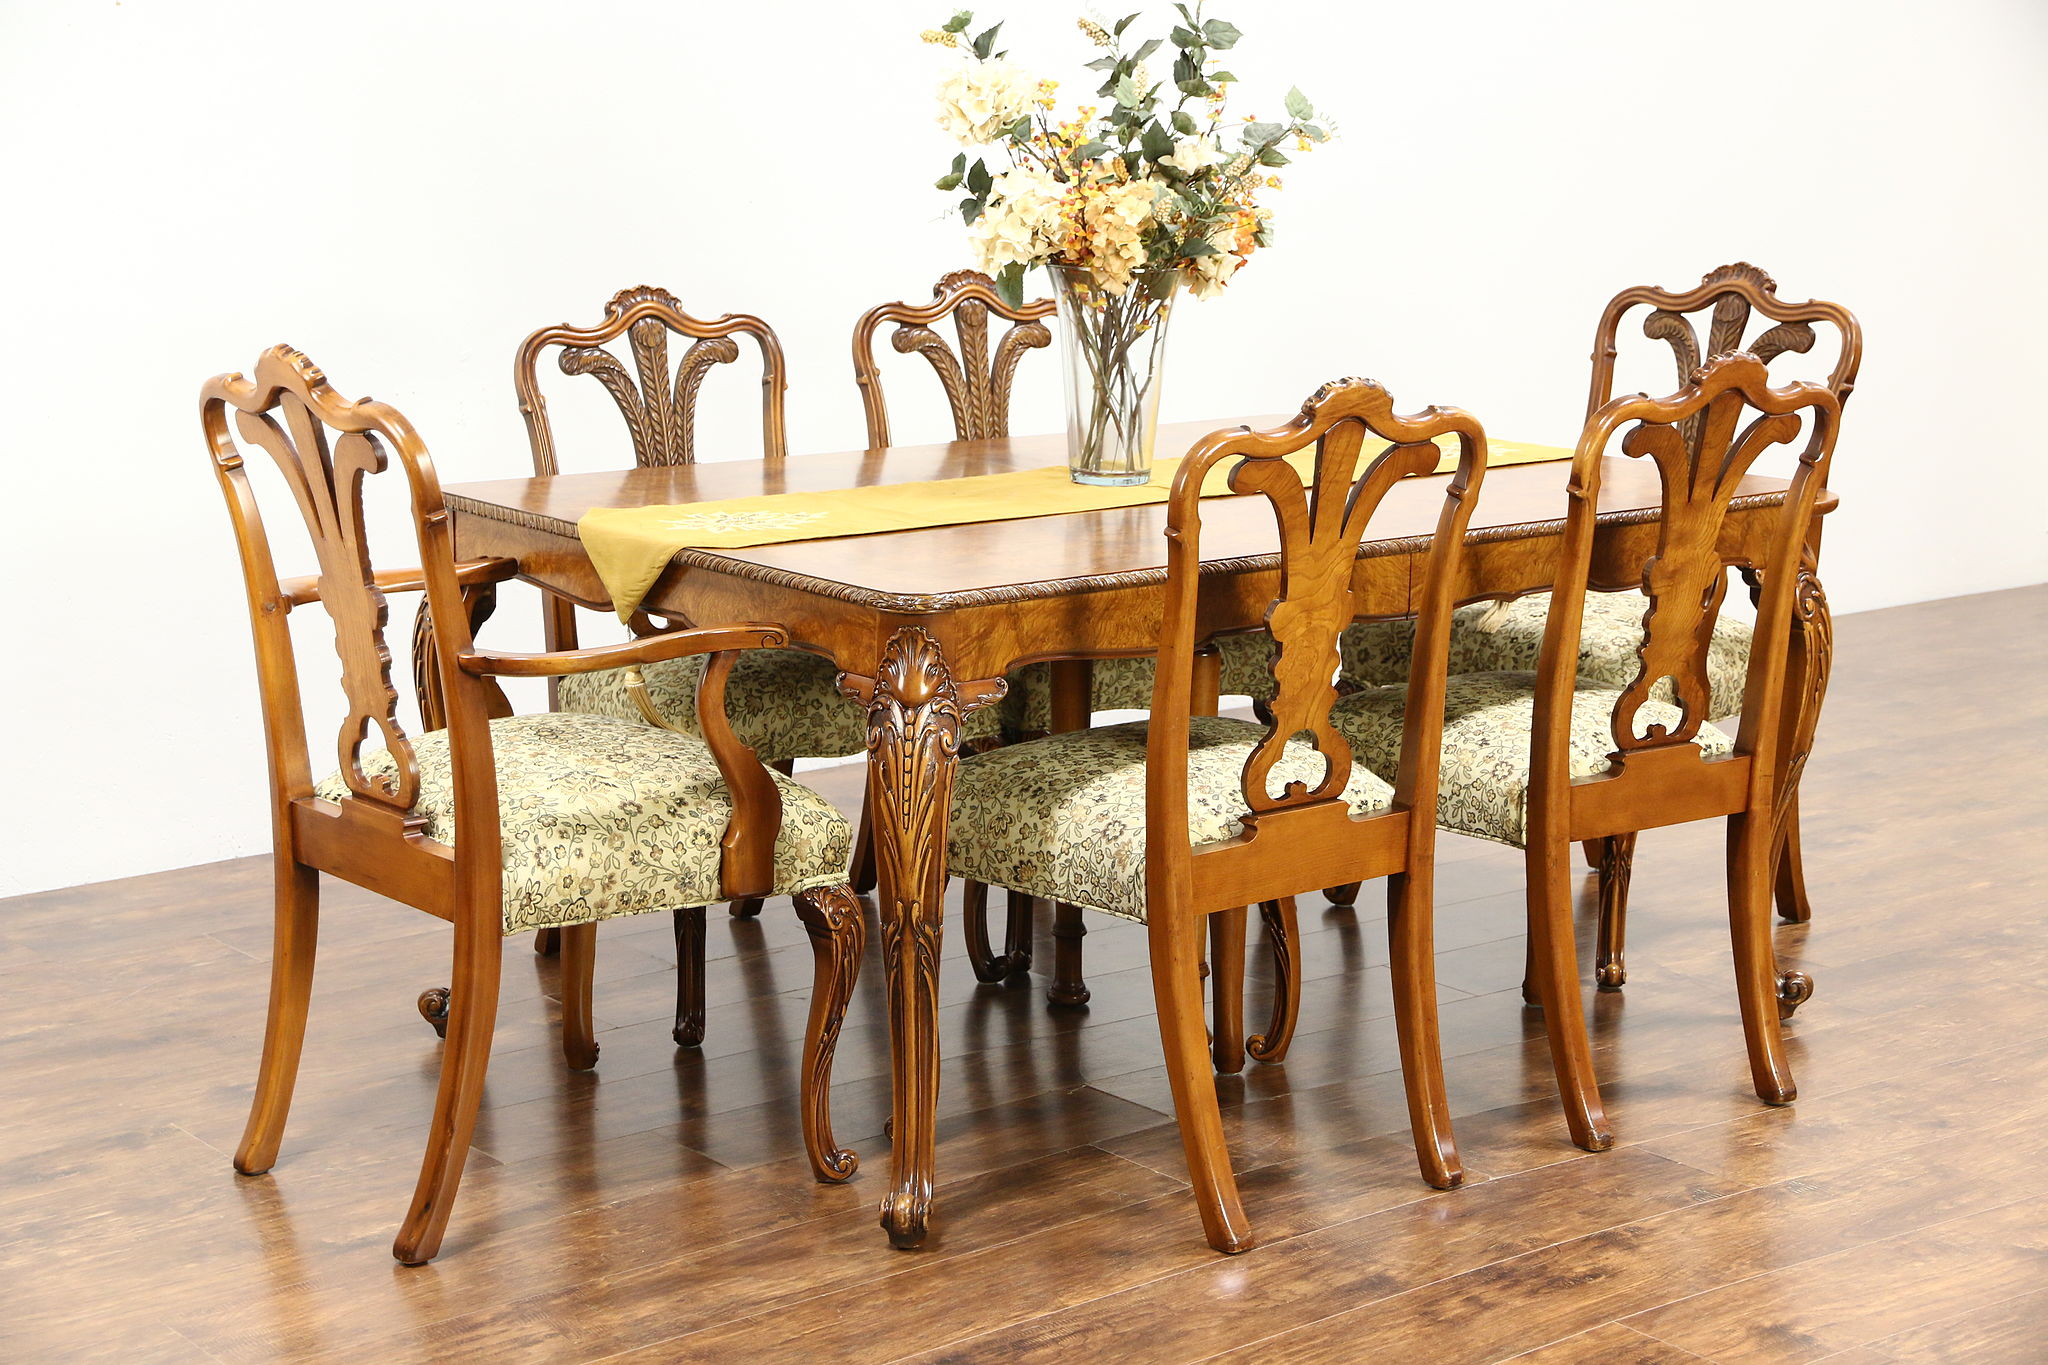 Dining Set Table 2 Leaves 6 Chairs 1940 s Vintage Carved Olive